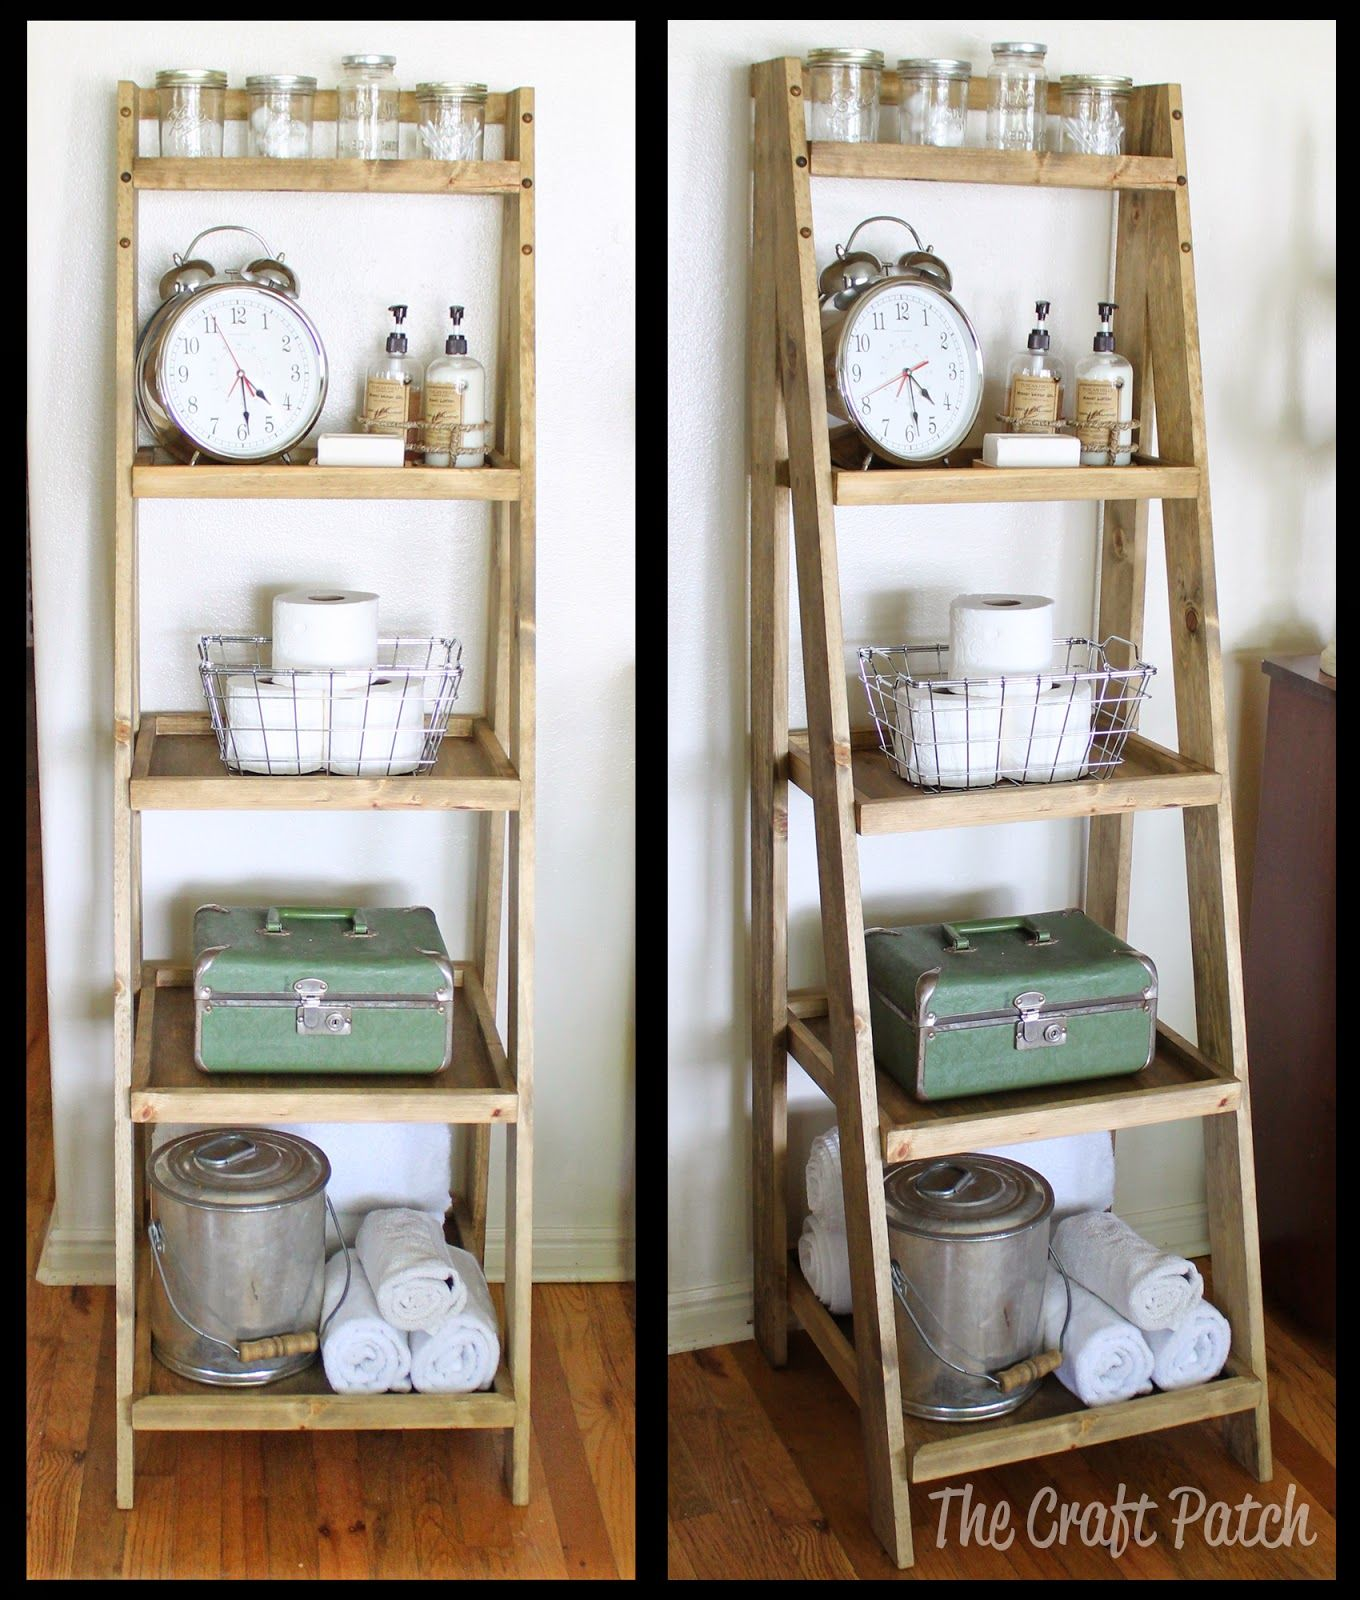 Diy Ladder Shelf Bathroom Storage Diy Ladder Shelf Bathroom Ladder Shelf Decor Bathroom Storage Ladder